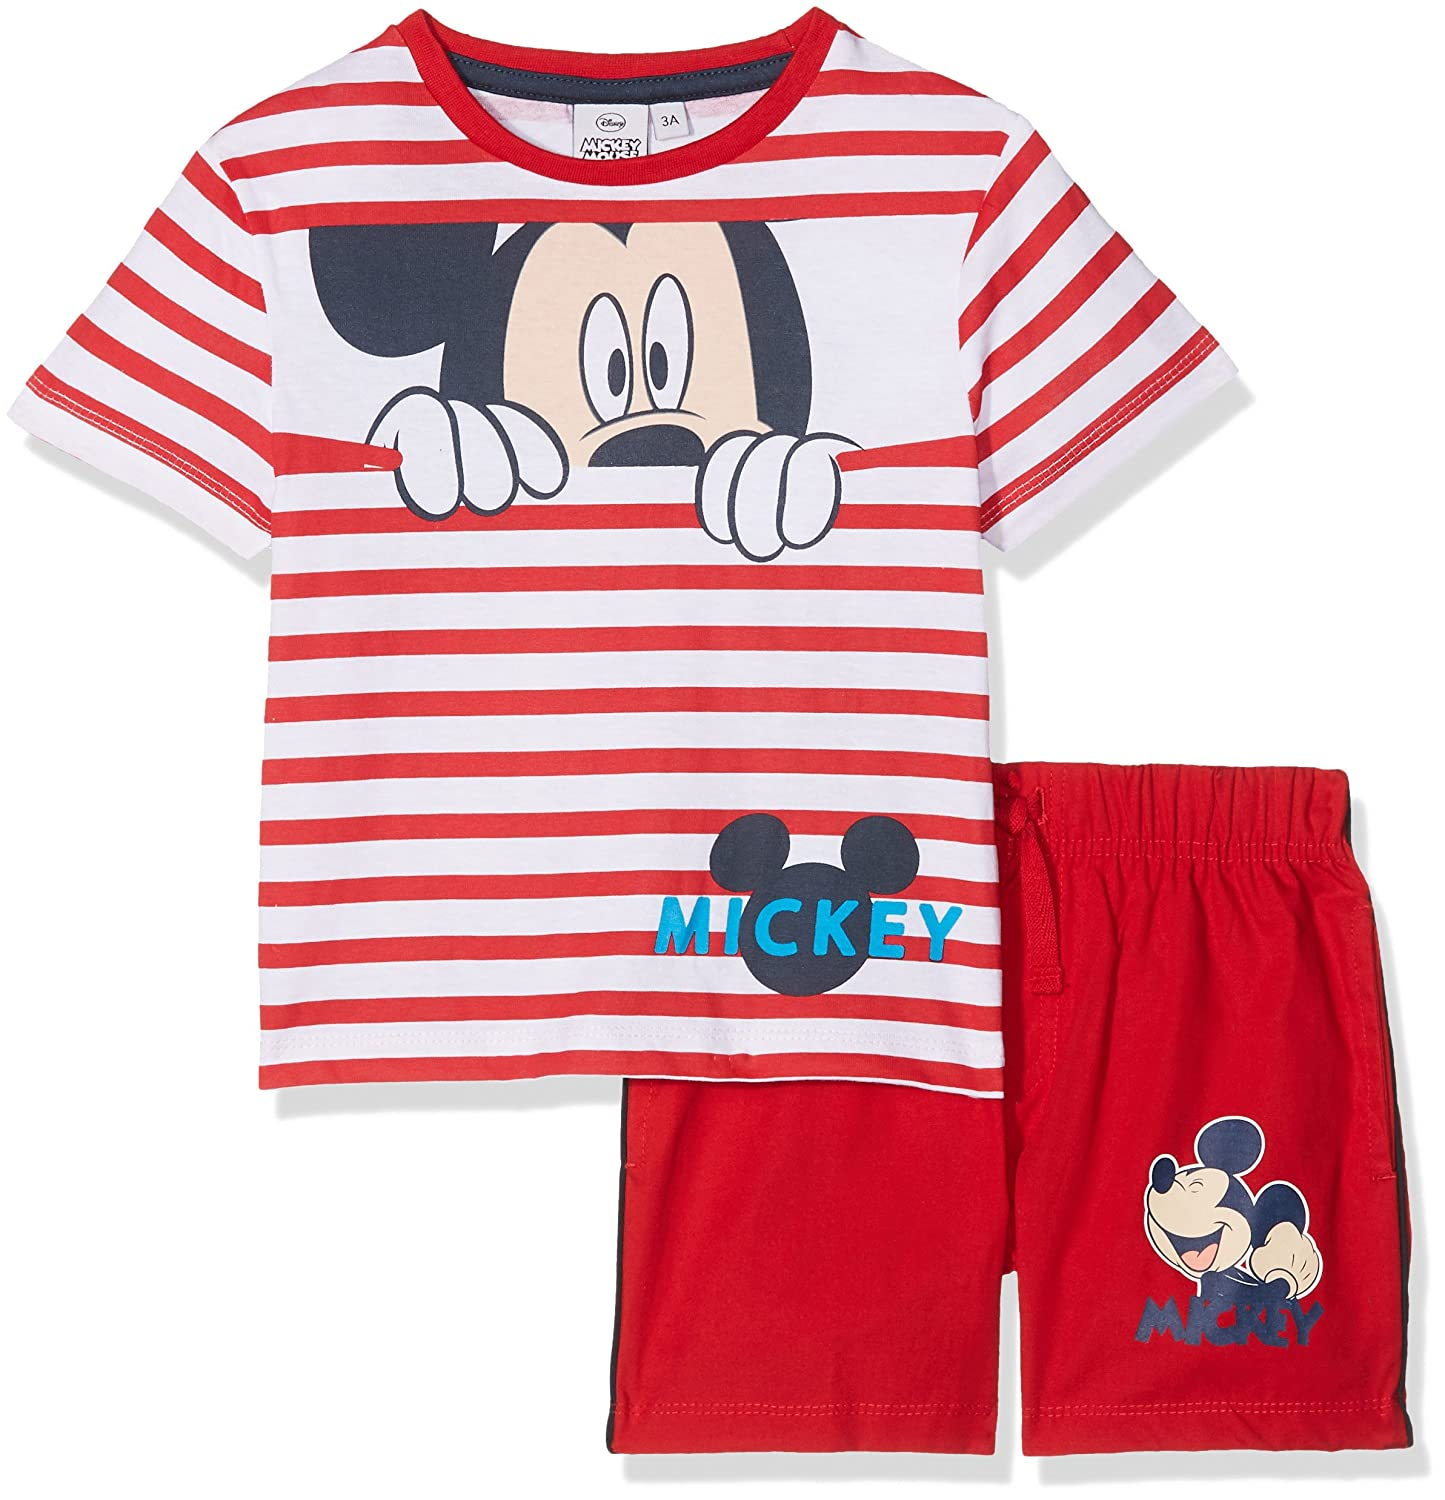 Mickey Mouse Boy's Fun Sportswear Set ER1429